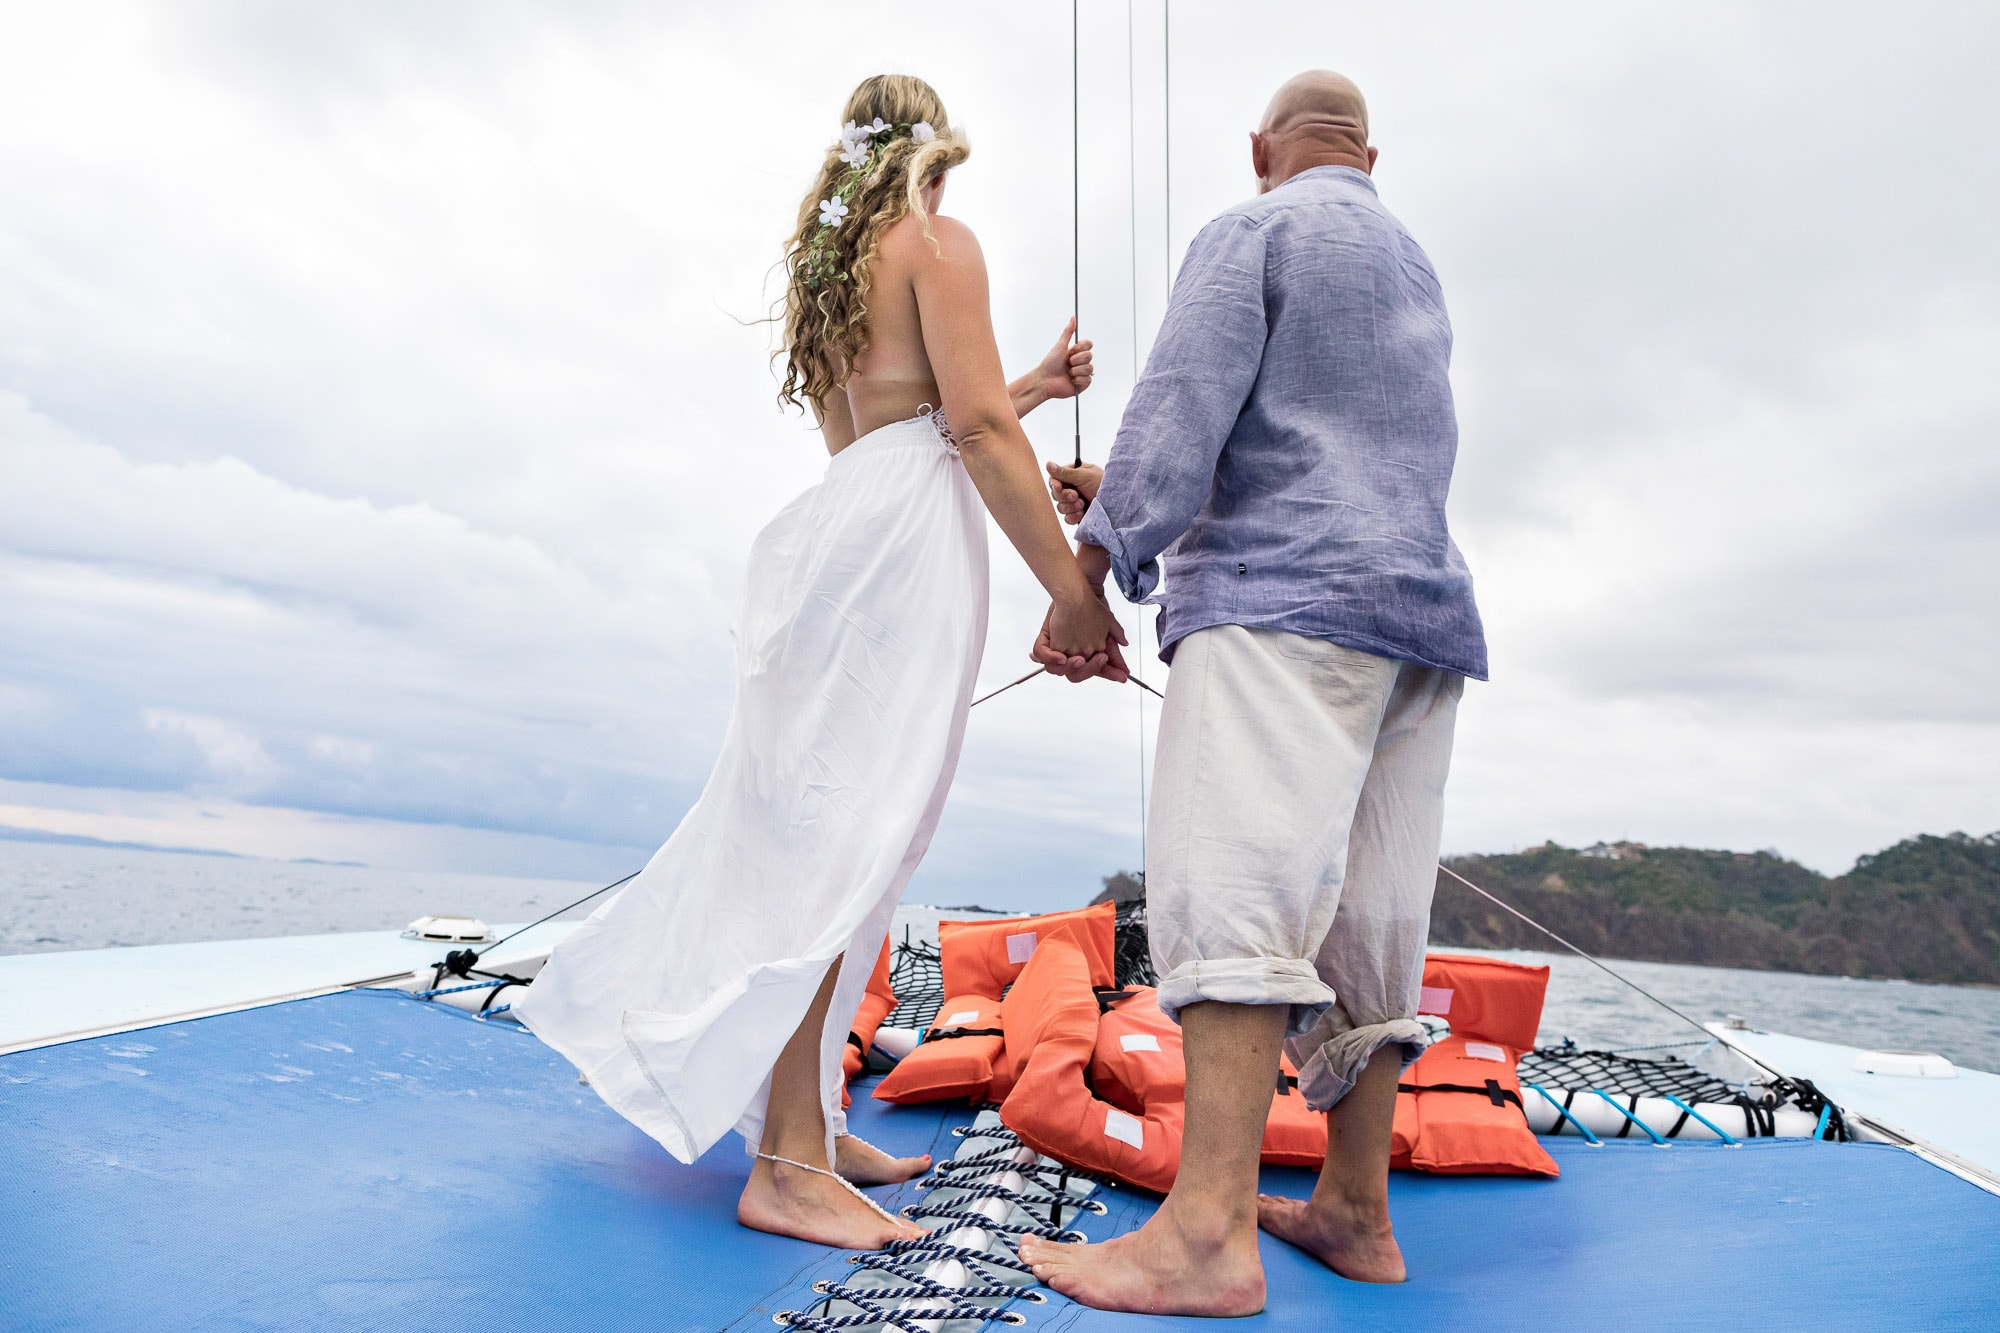 Destination wedding couple holding hands on the wedding boat and looking out to the horizon.